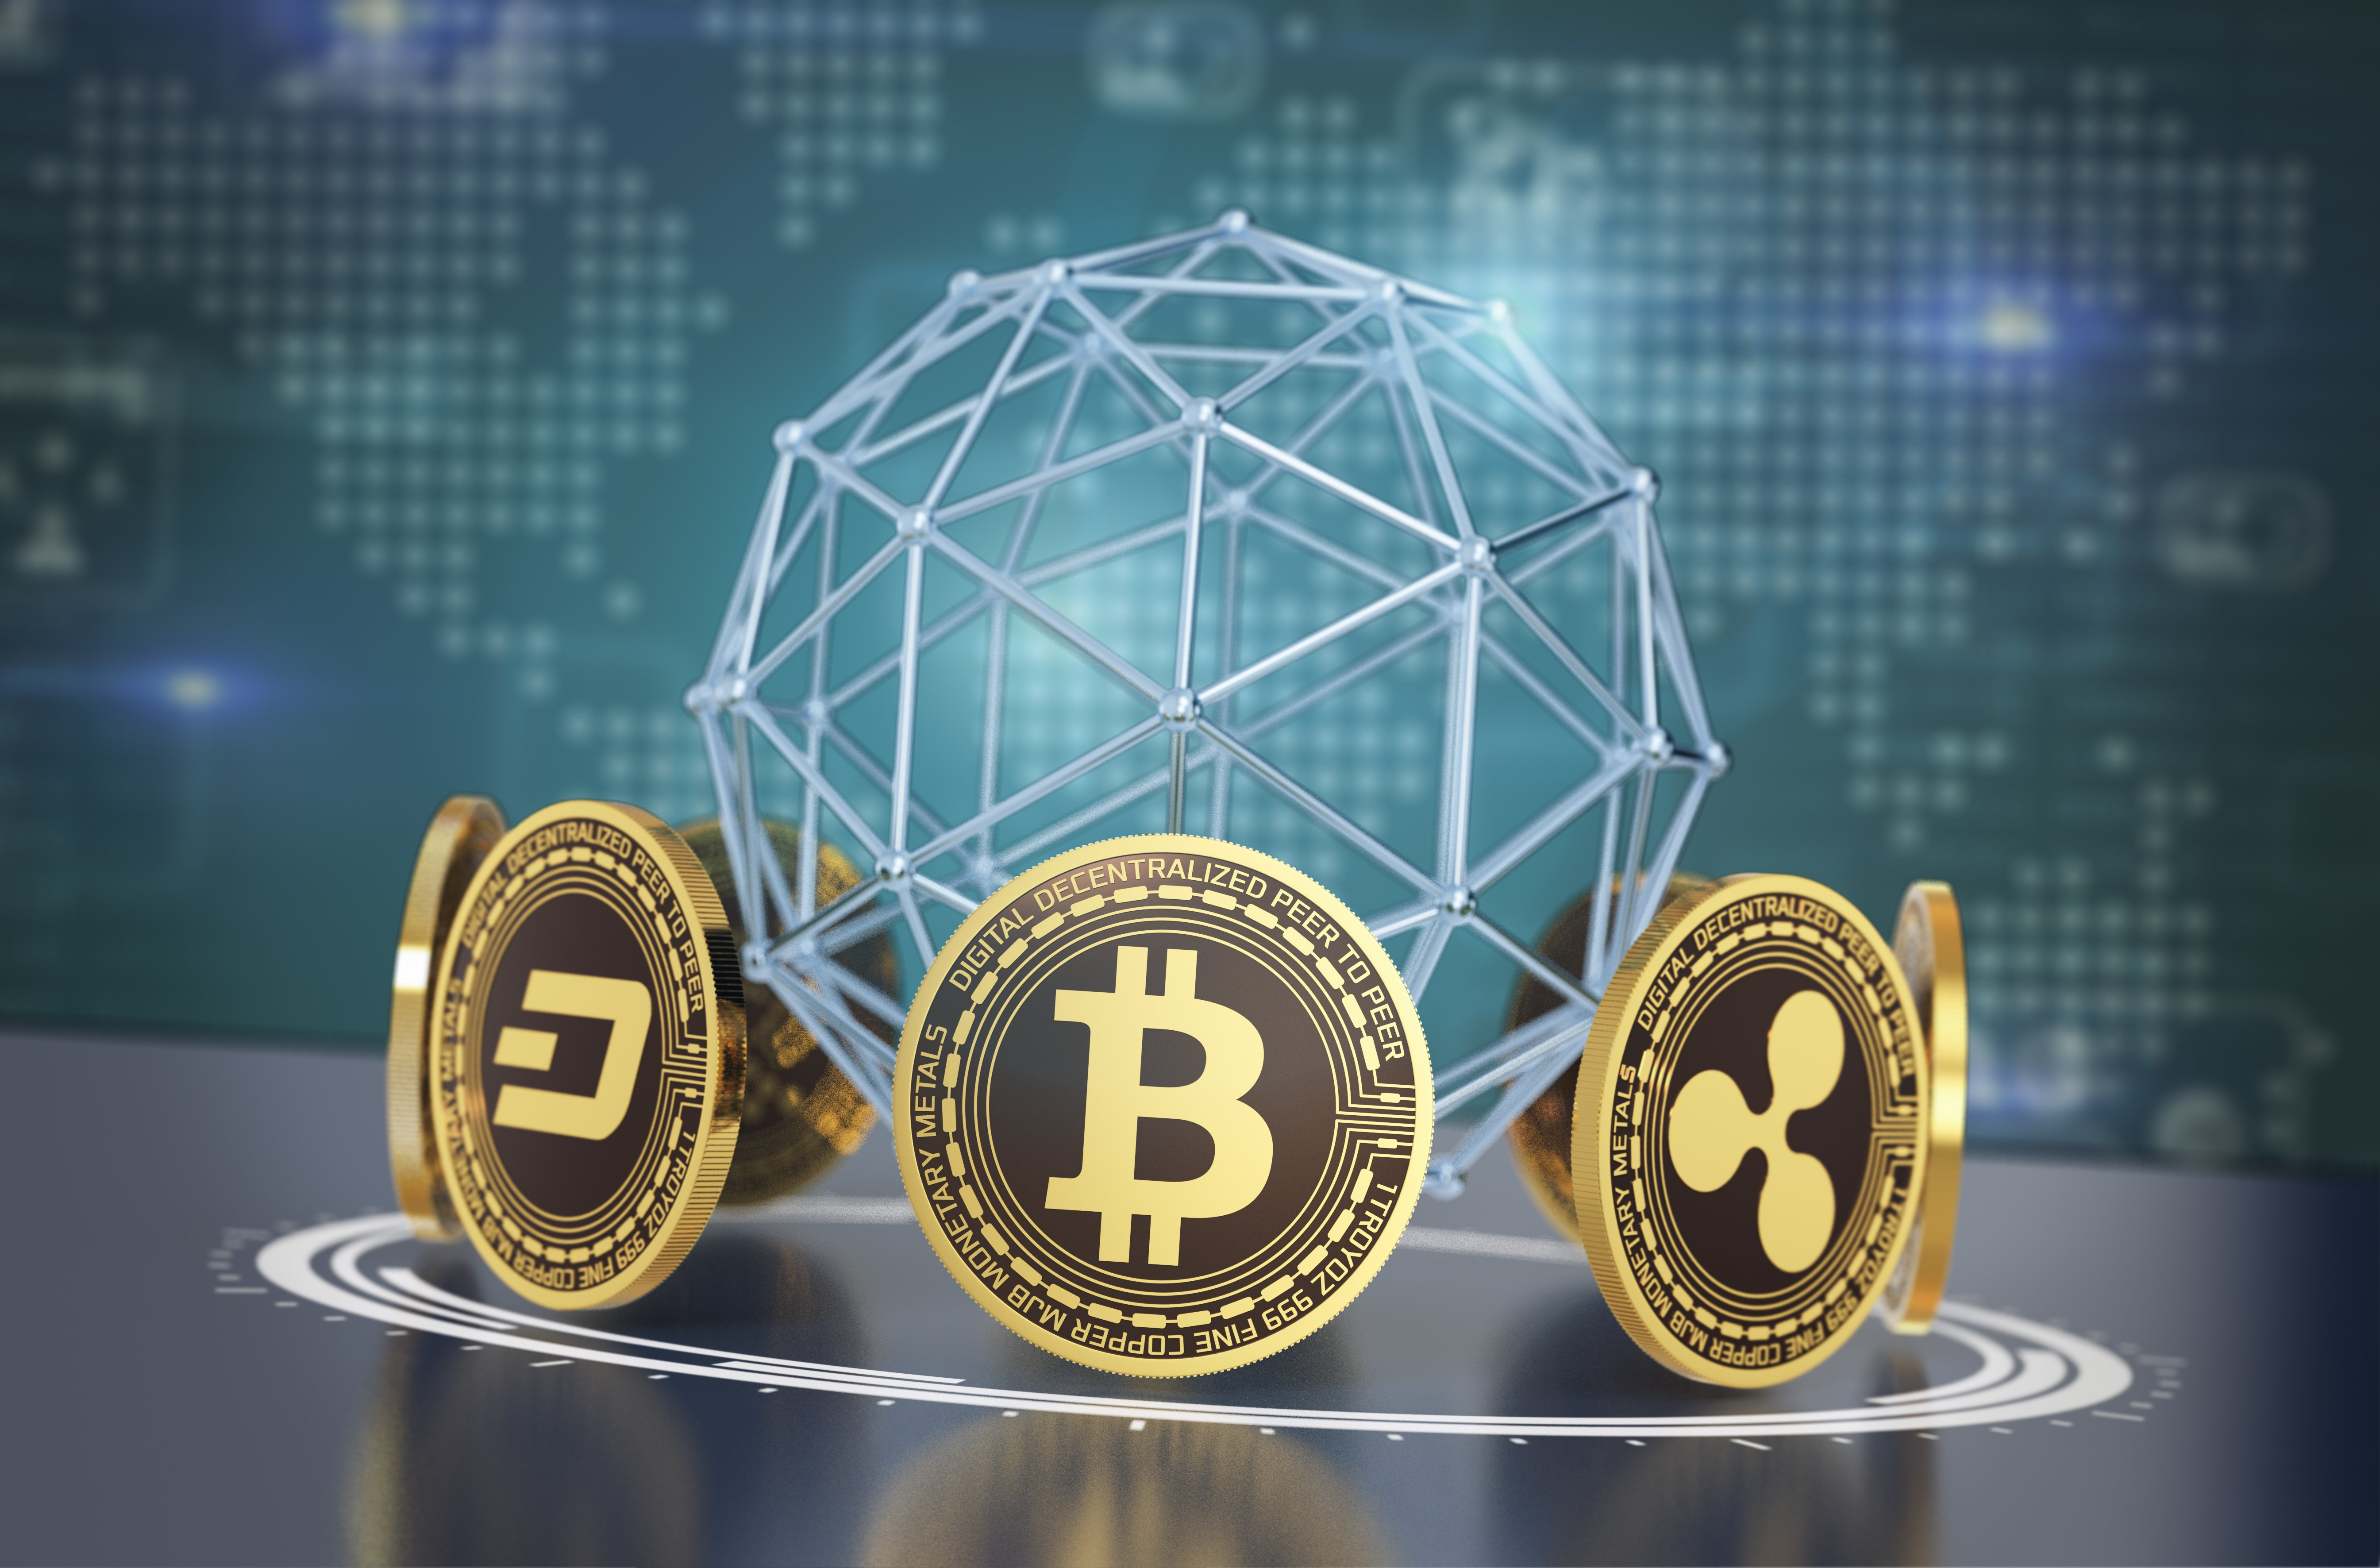 Double-digit returns thanks to staking